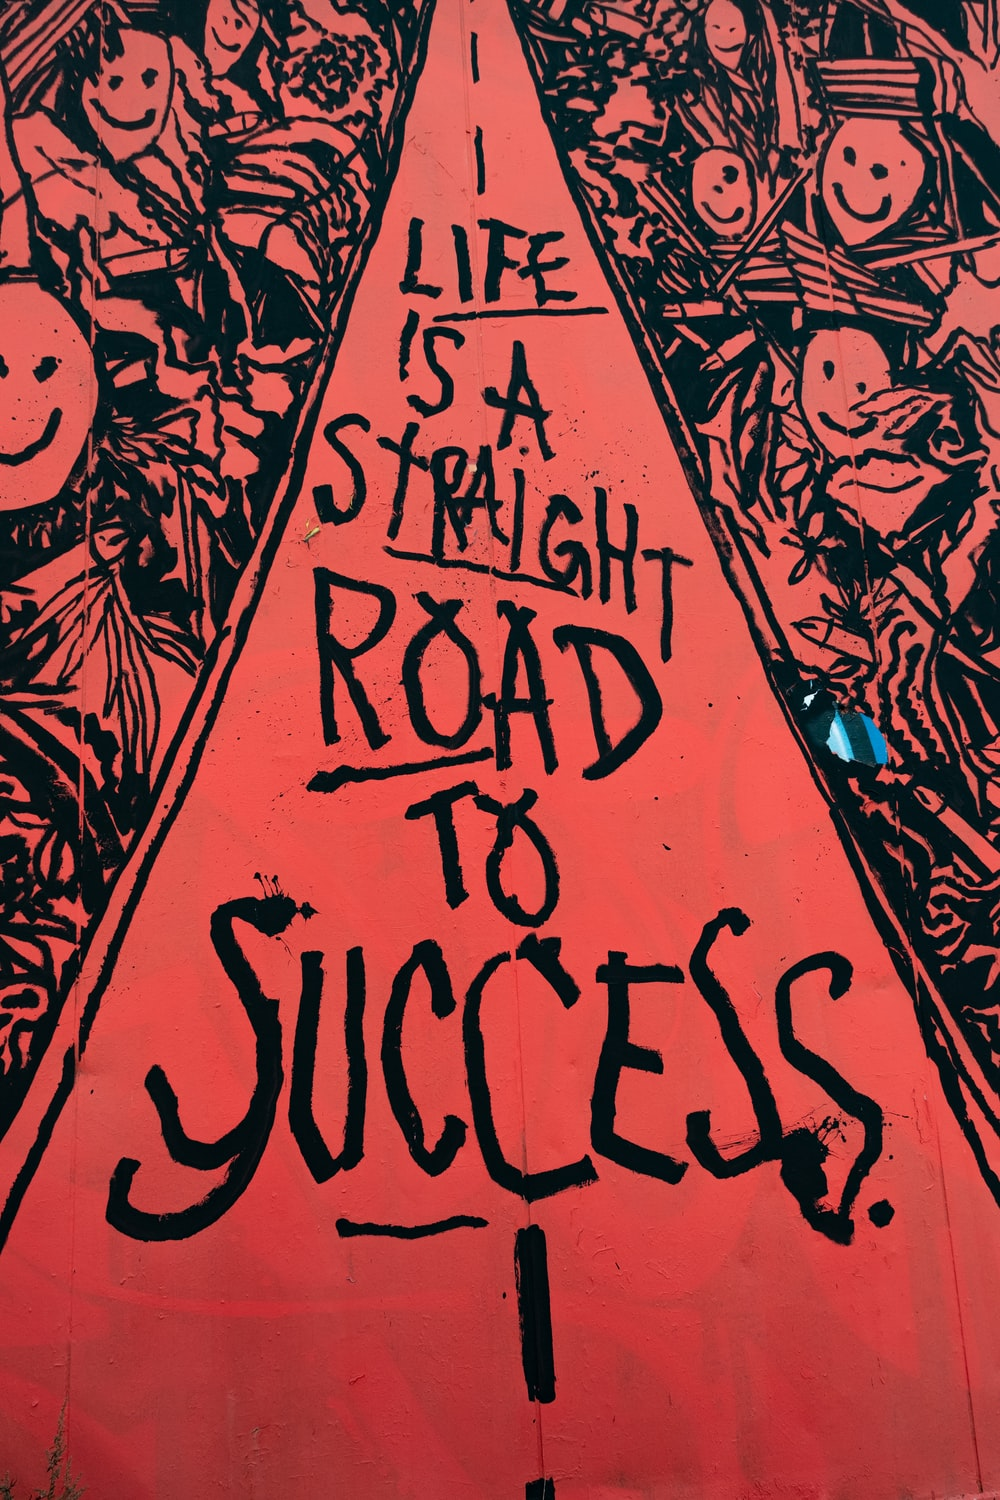 Life is a Straight Road to Success artwork